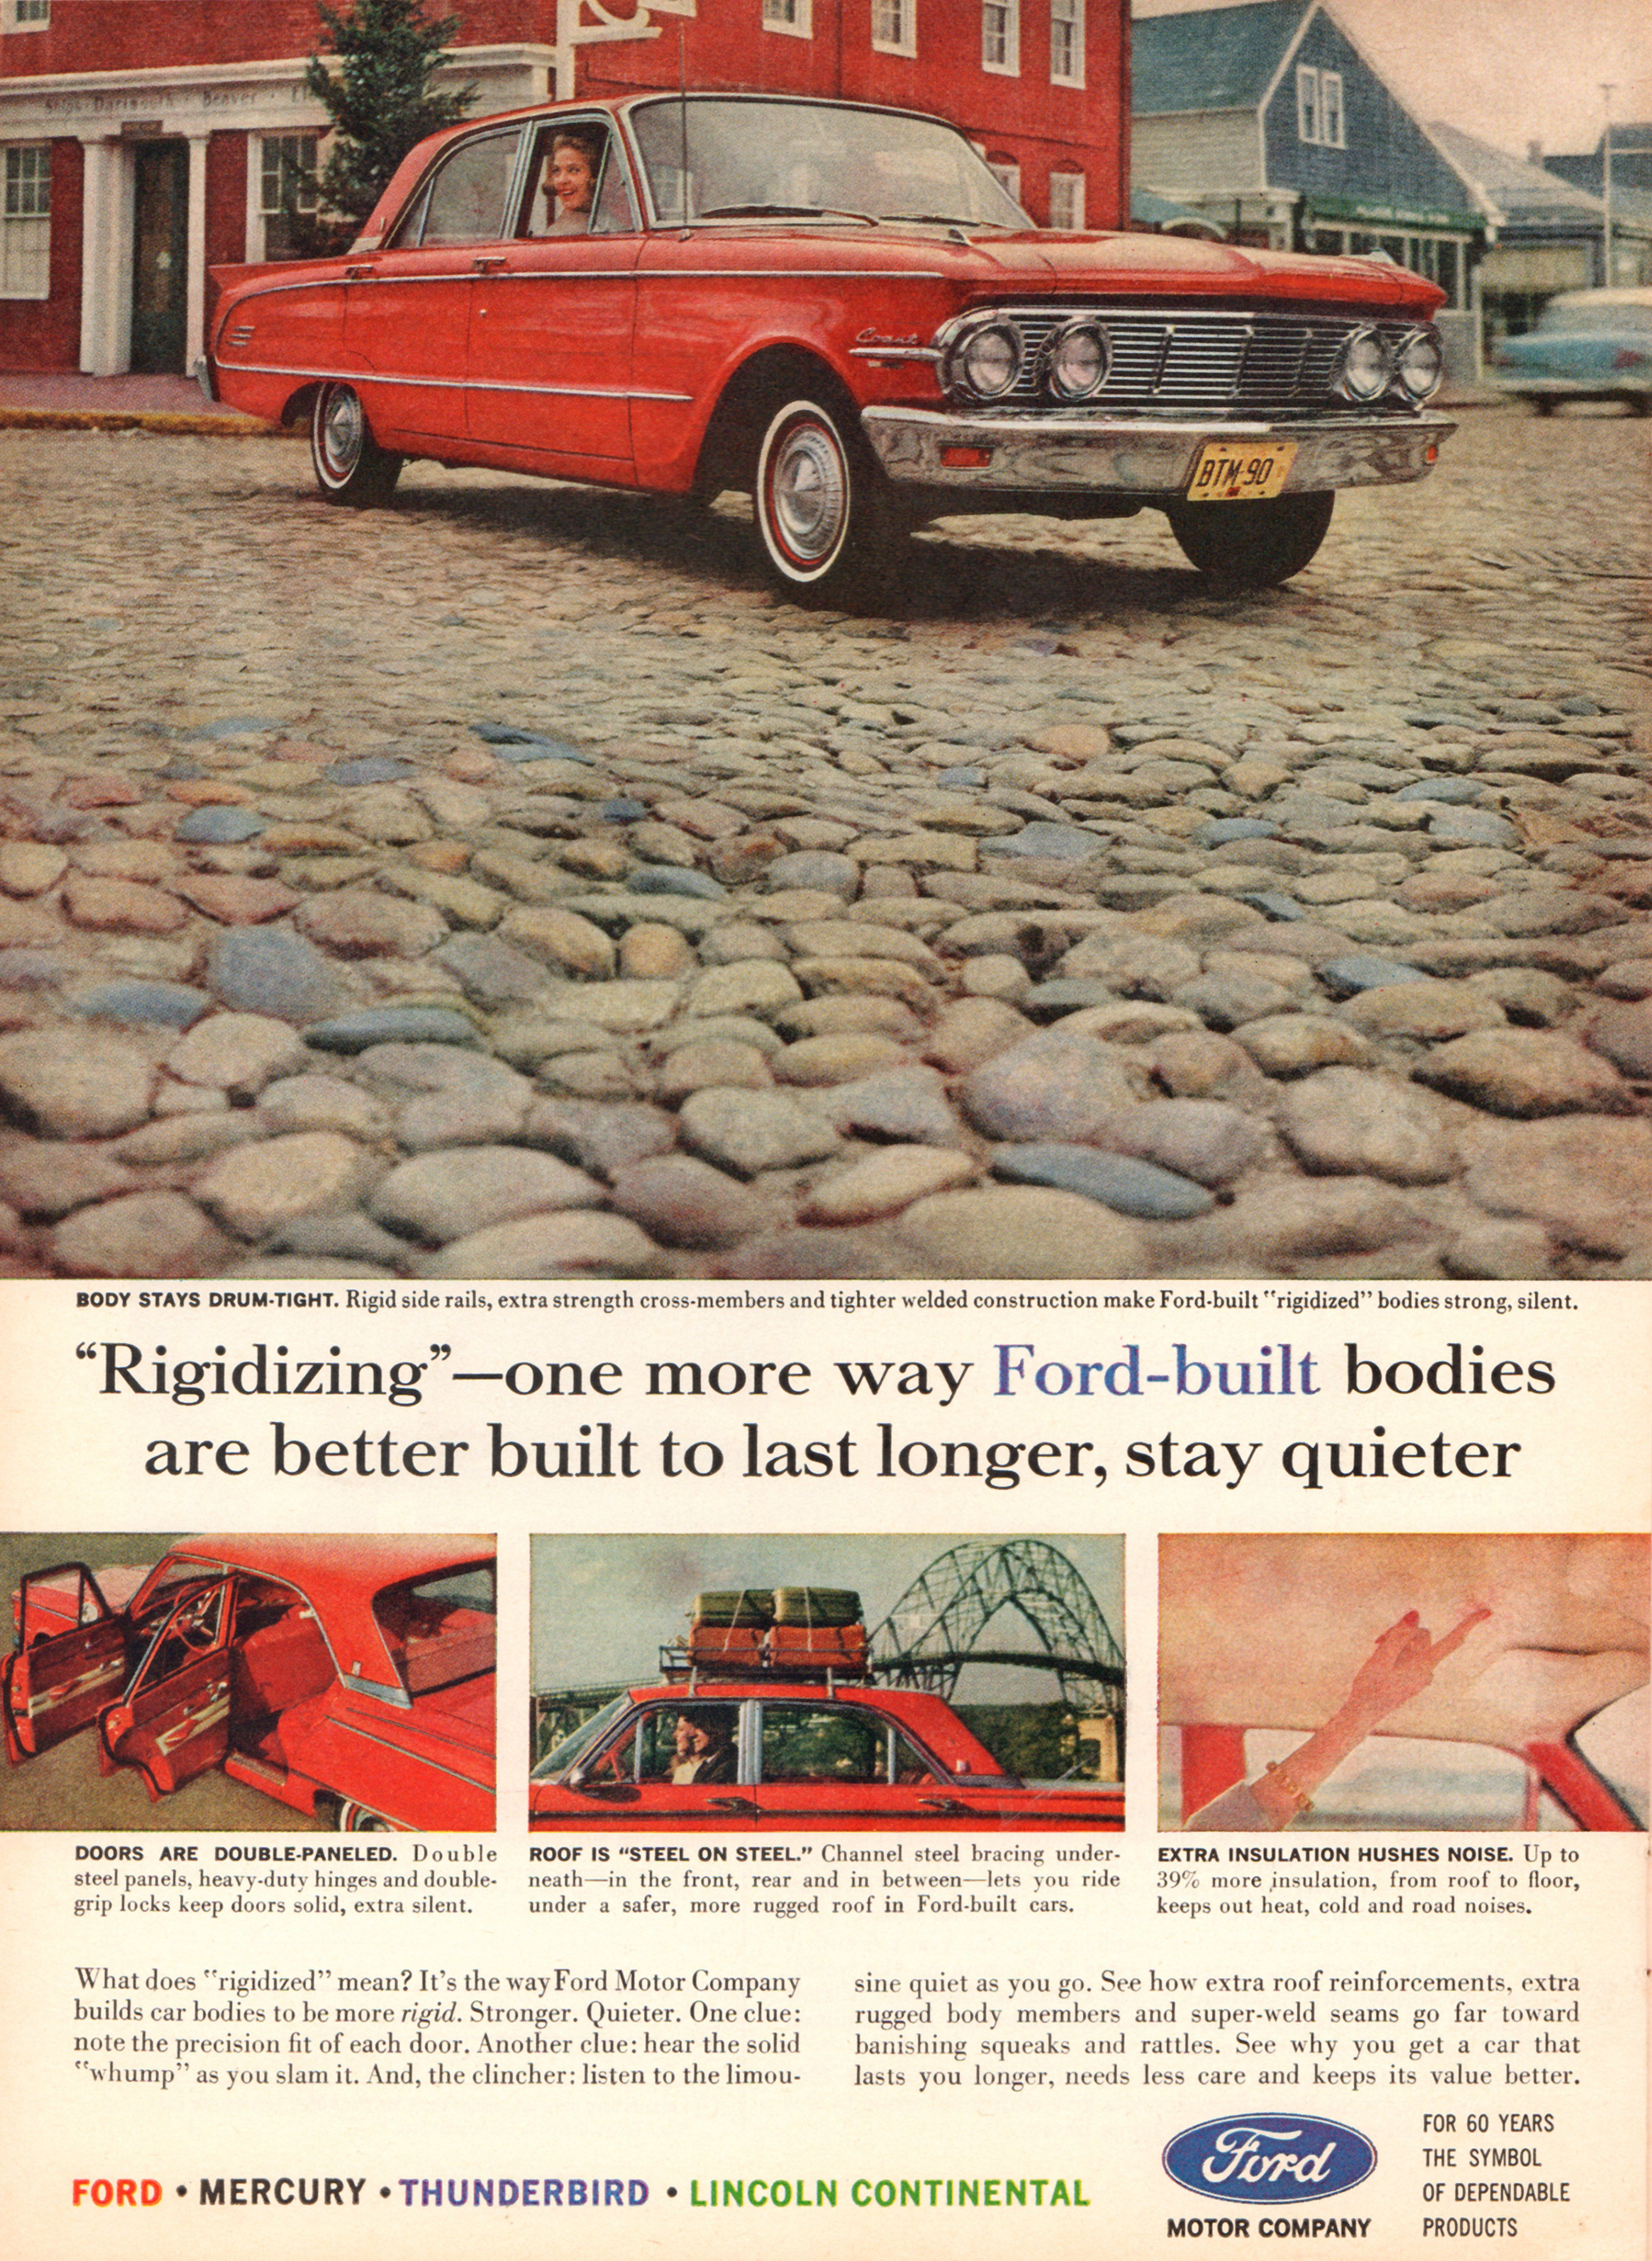 1963 Ford Comet Advertisement Time Magazine March 15 1963 In 2020 Red Car Lincoln Continental Car Photos